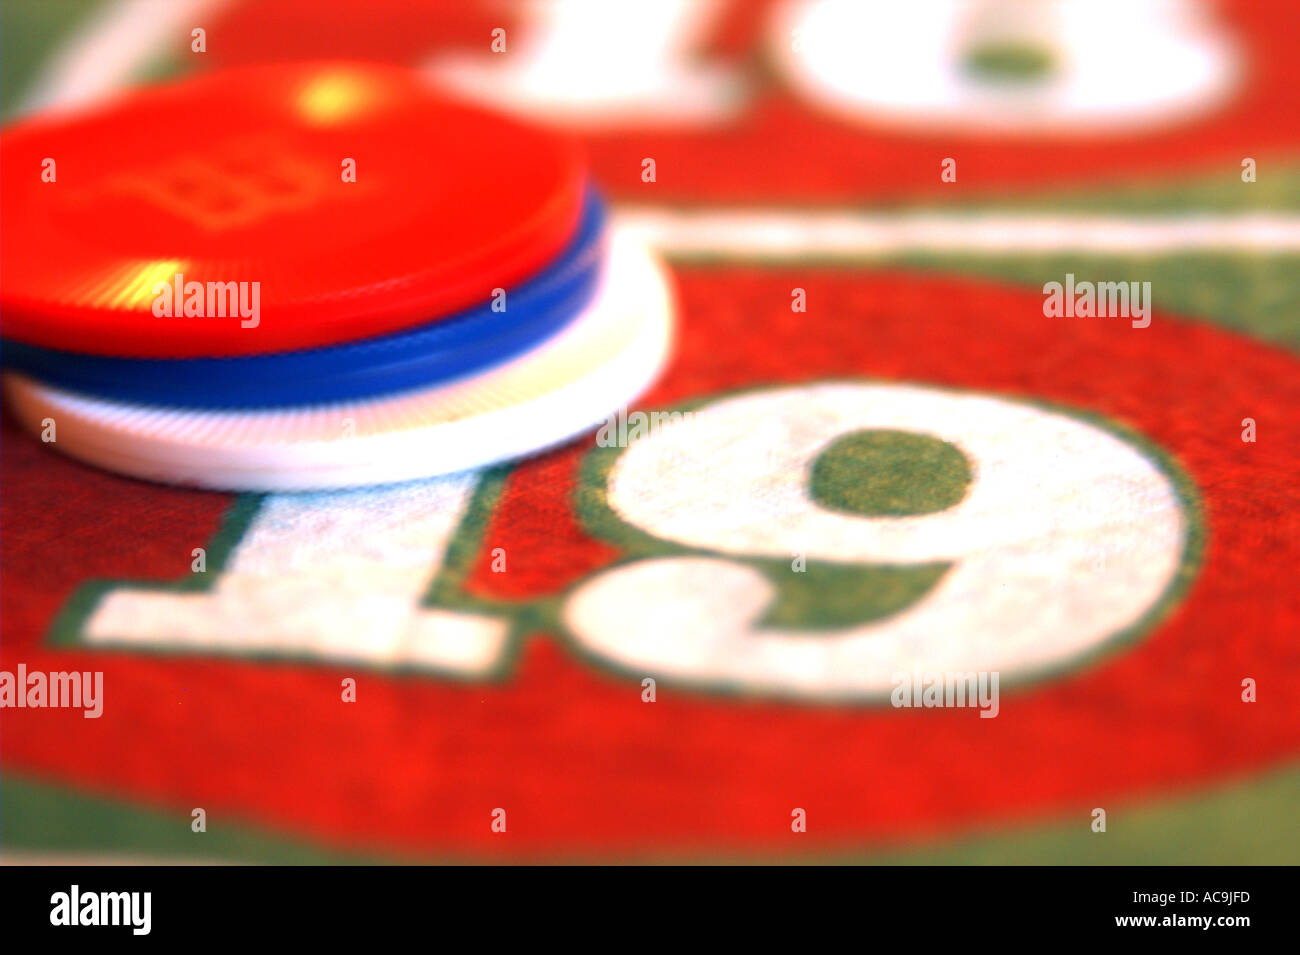 Bet on number nineteen of roulette table - Stock Image